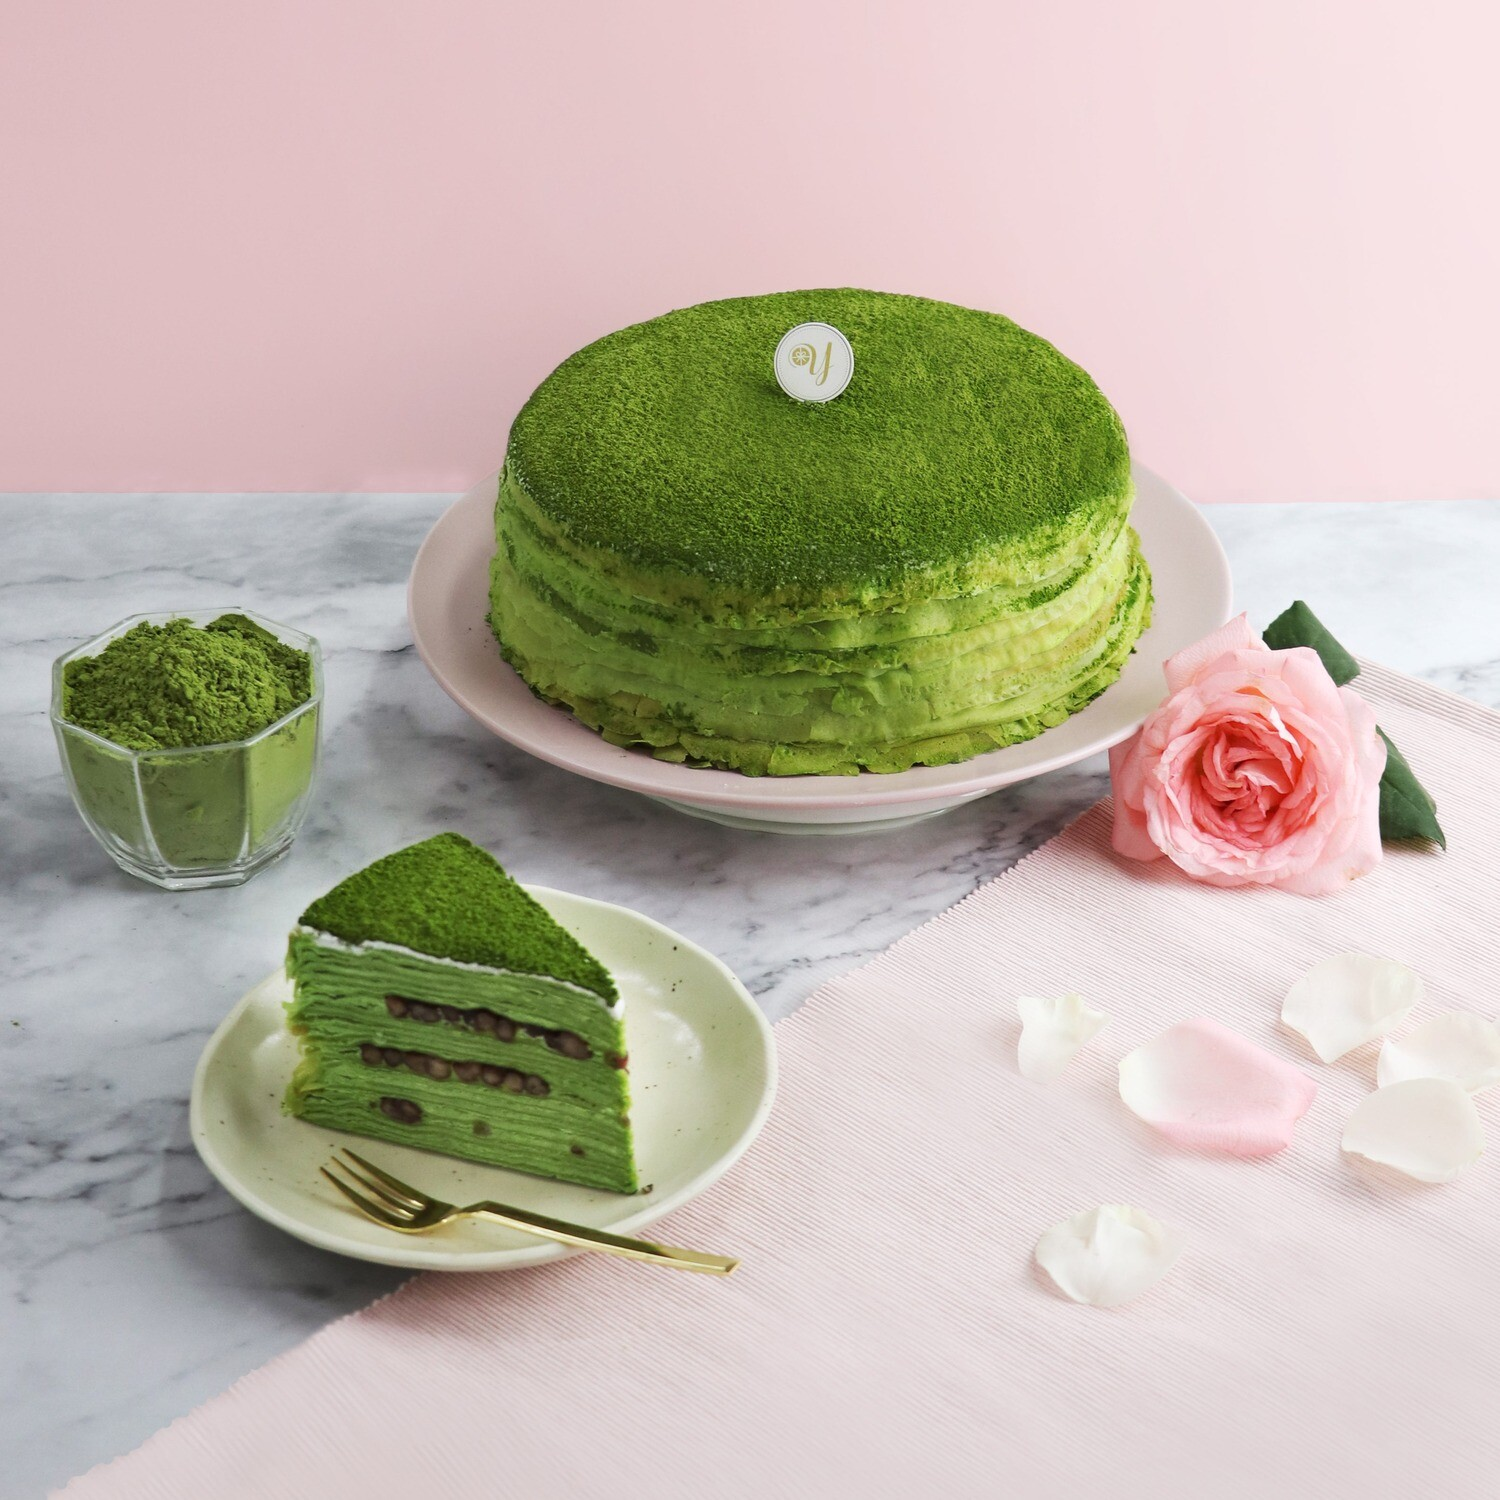 Matcha & Red Bean Mille Crepe Cake (By: Yippii Gift Cake from Kuala Lumpur)